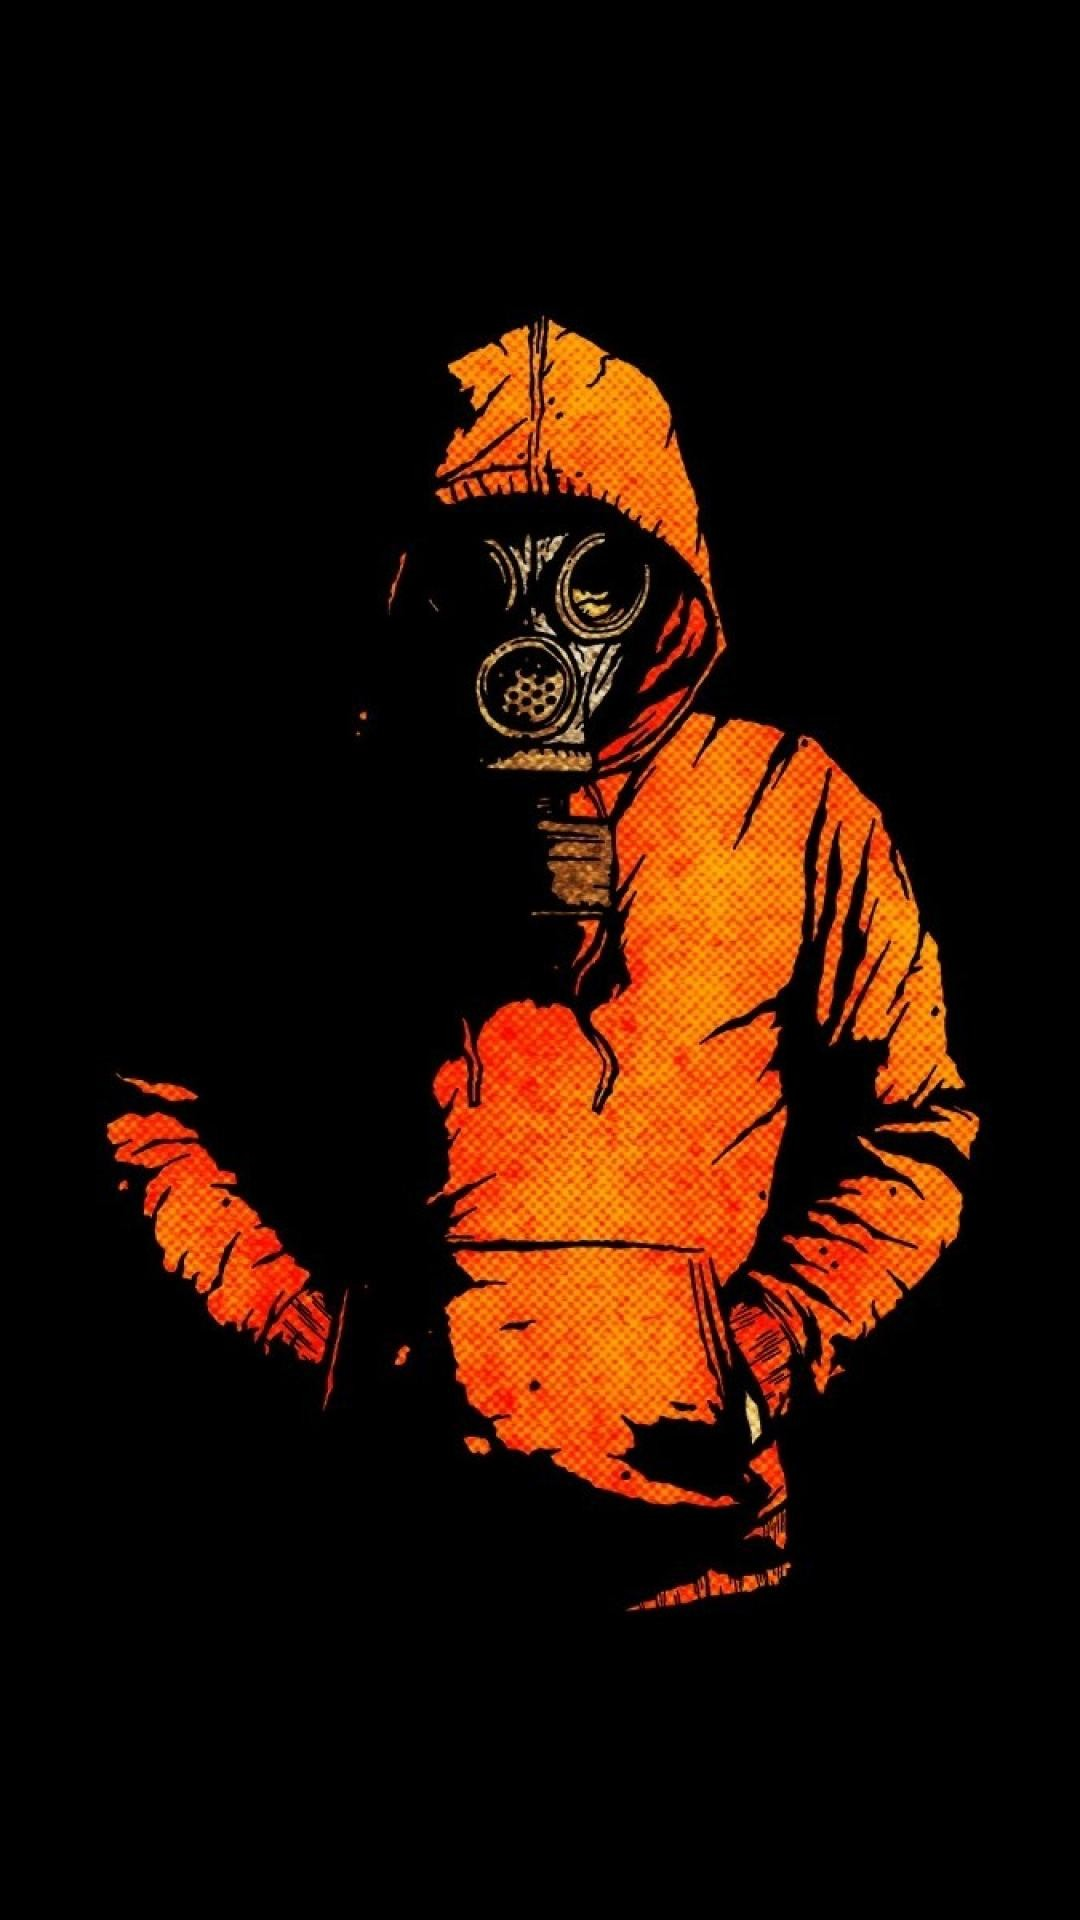 Res: 1080x1920, iphone 6 black and orange man cool wallpapers